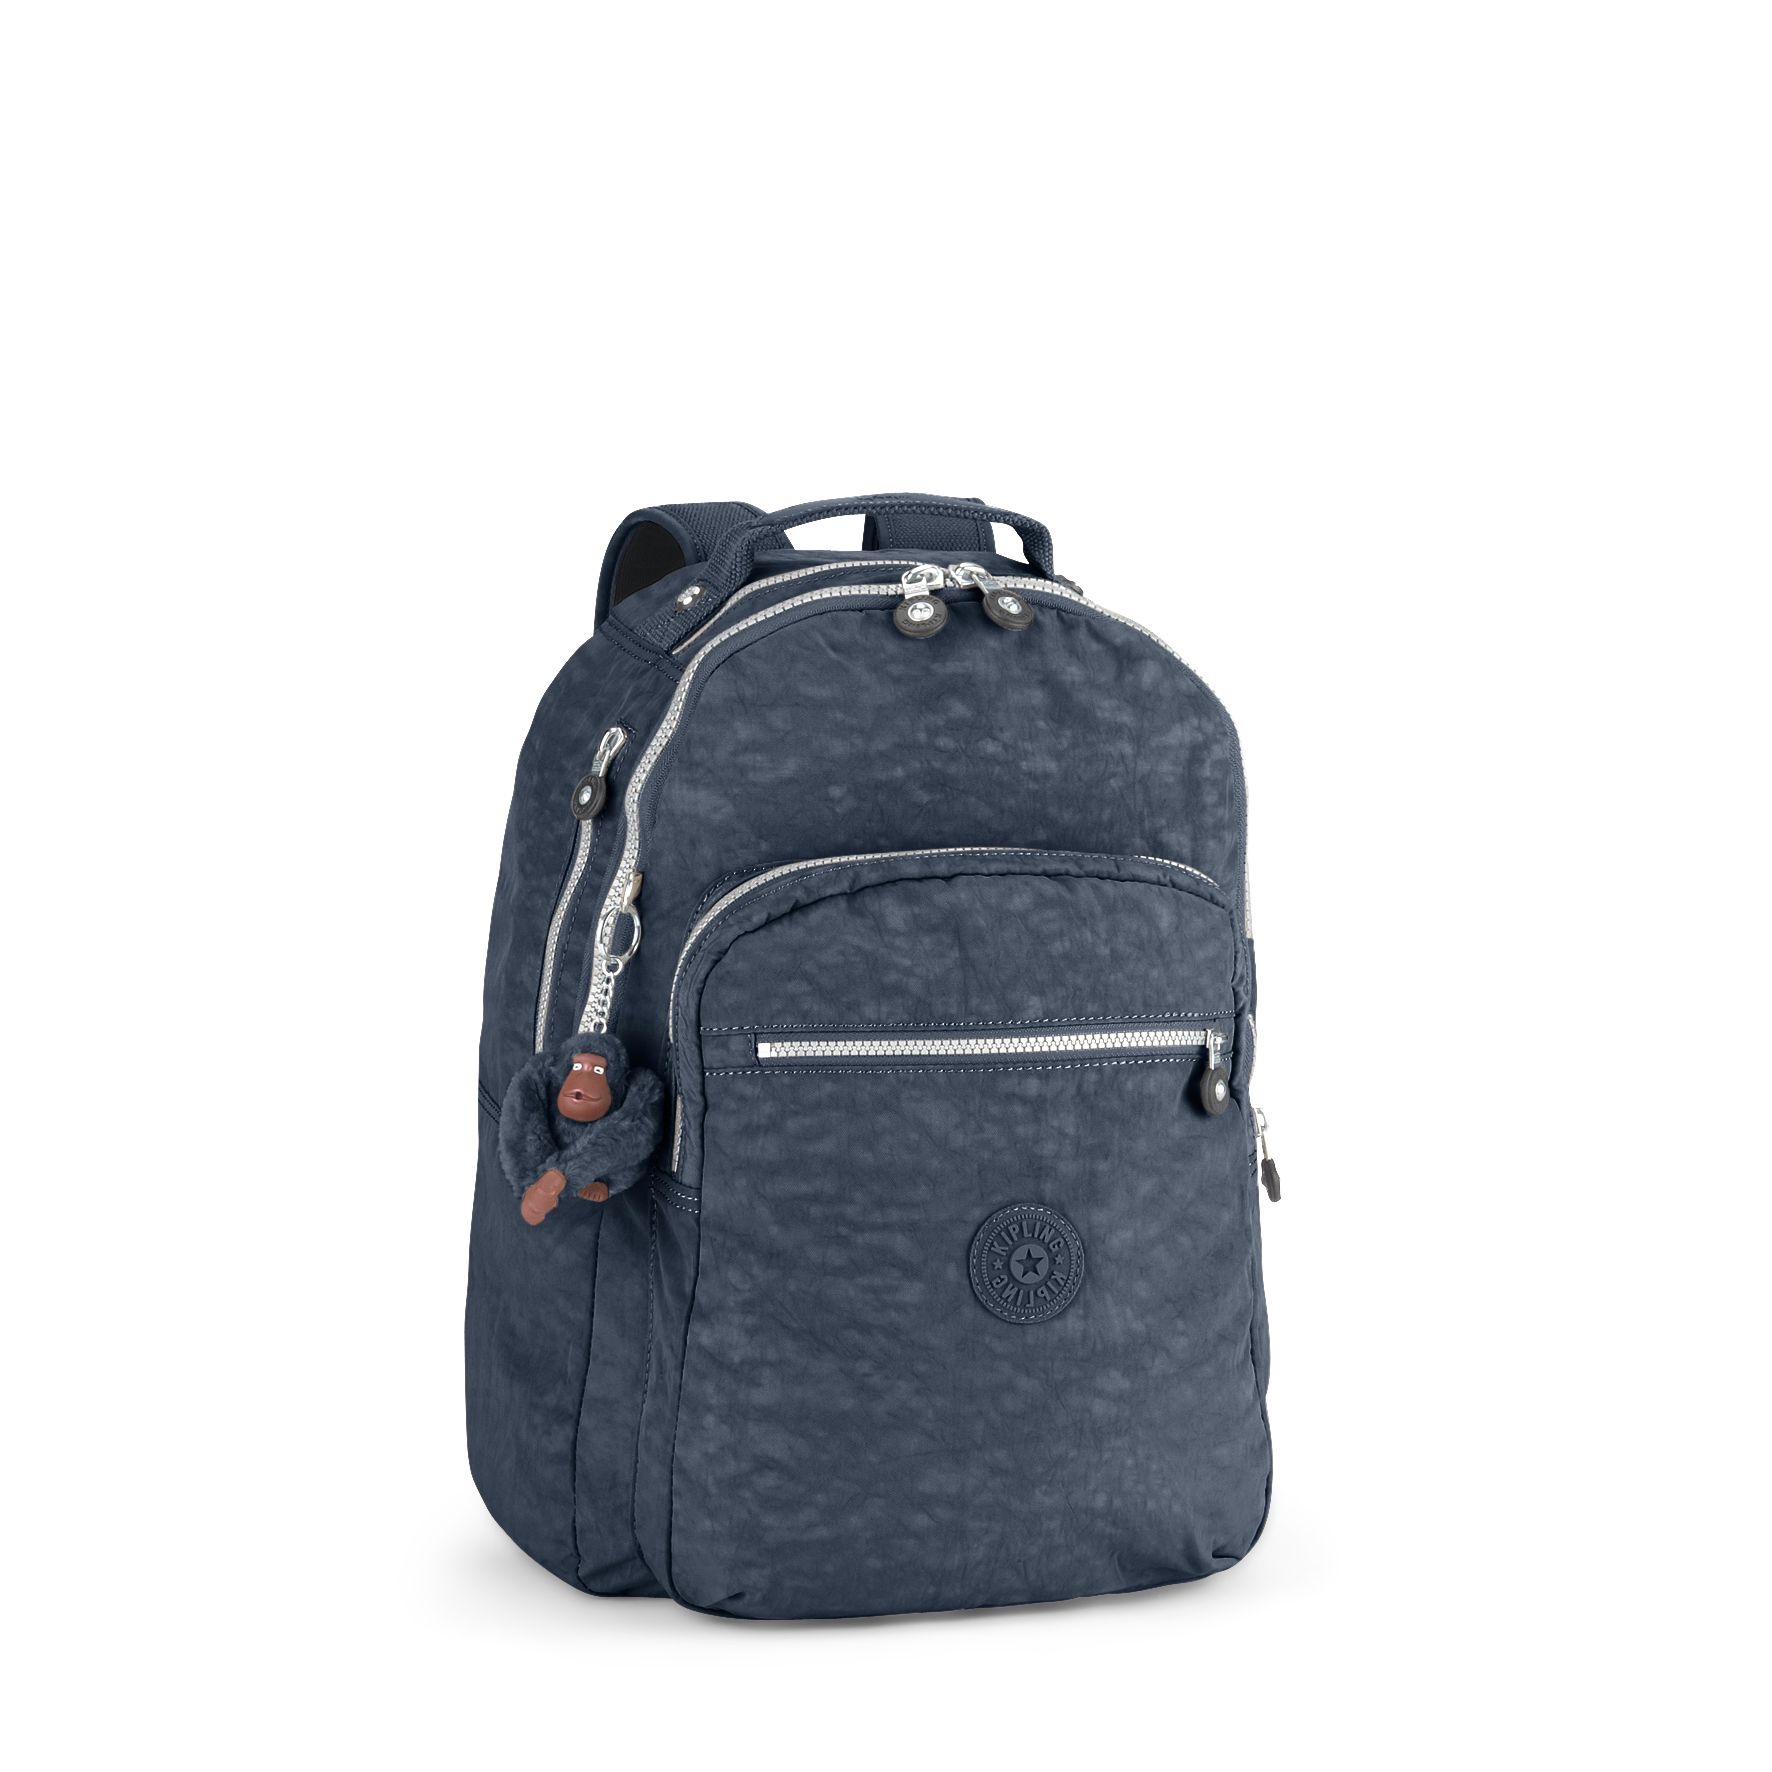 Clas seoul large backpack